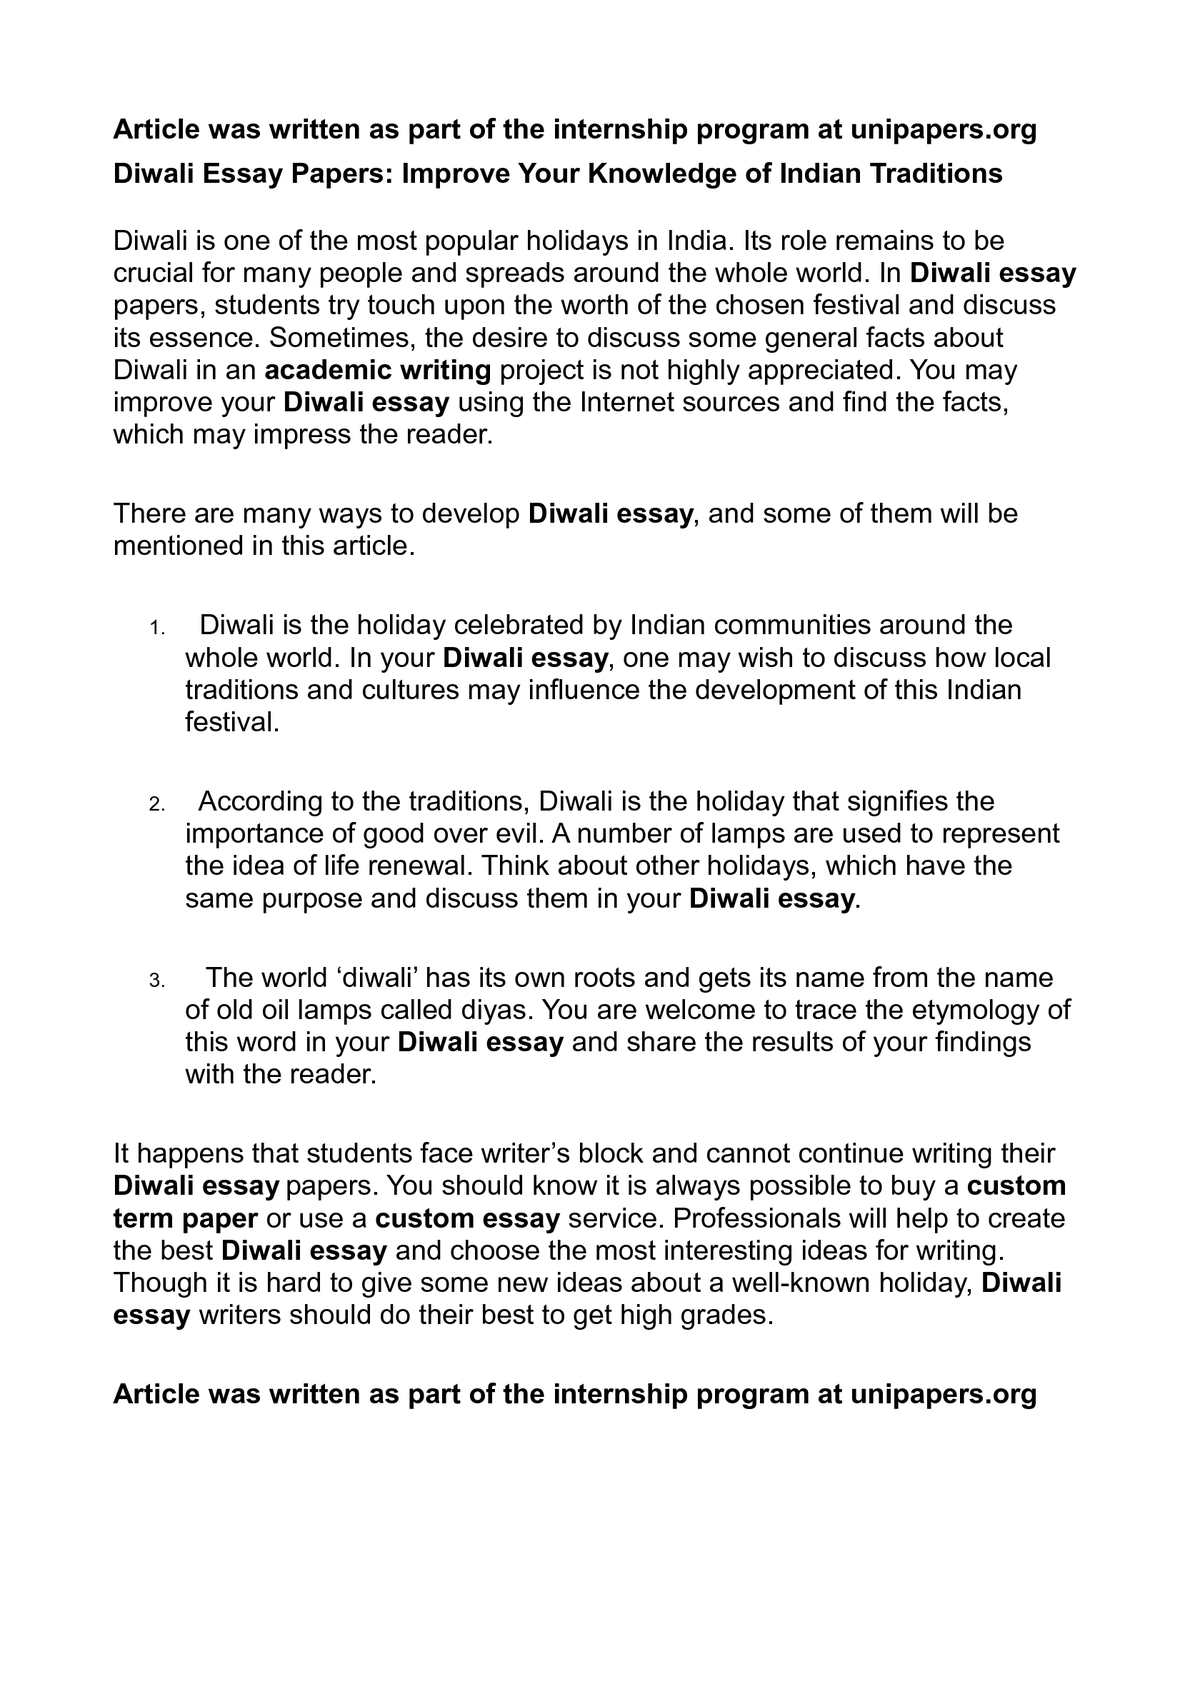 Essay on Diwali Festival